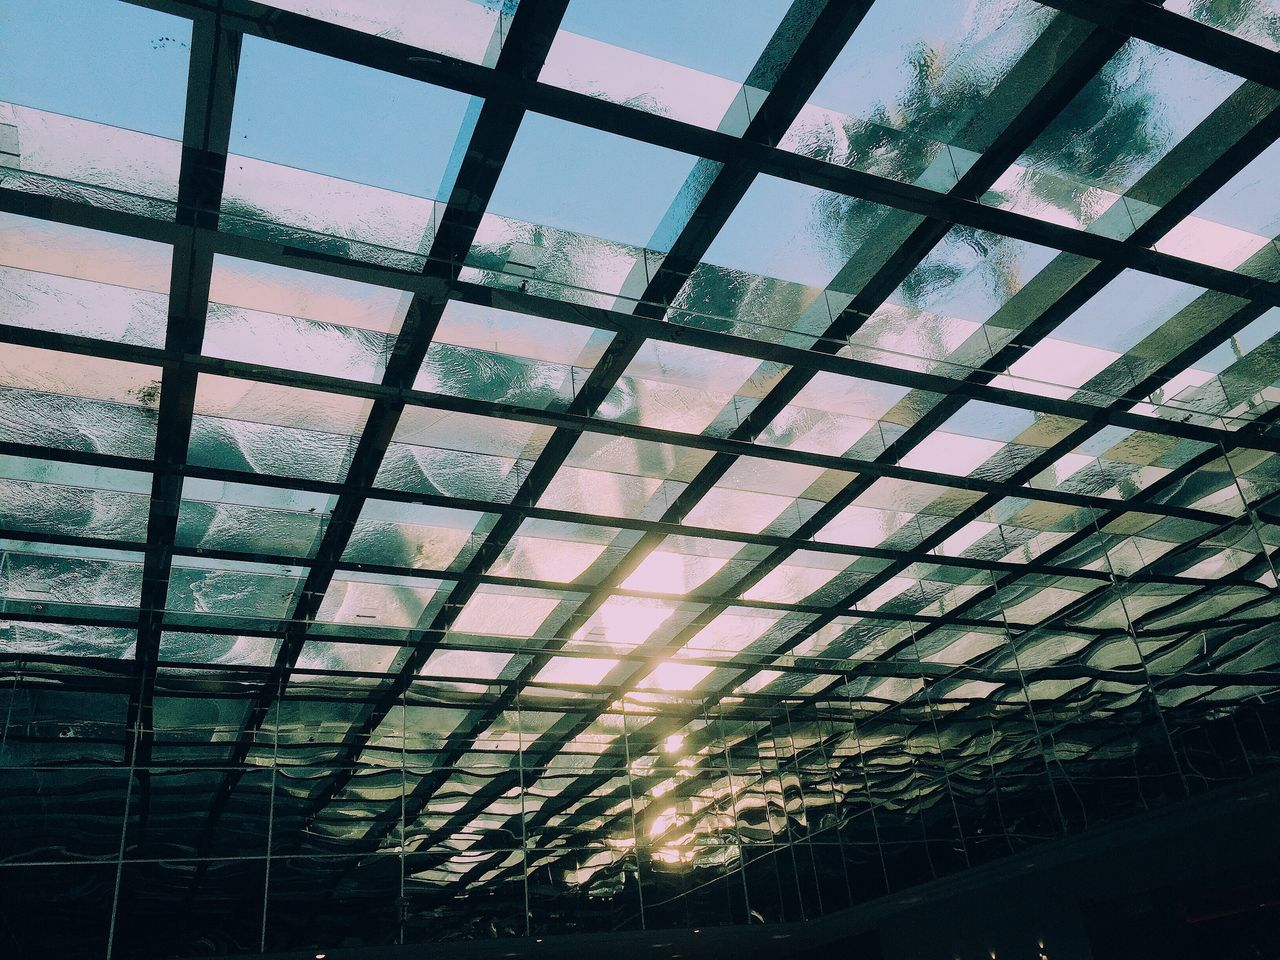 indoors, ceiling, low angle view, window, architecture, built structure, pattern, no people, modern, day, sky